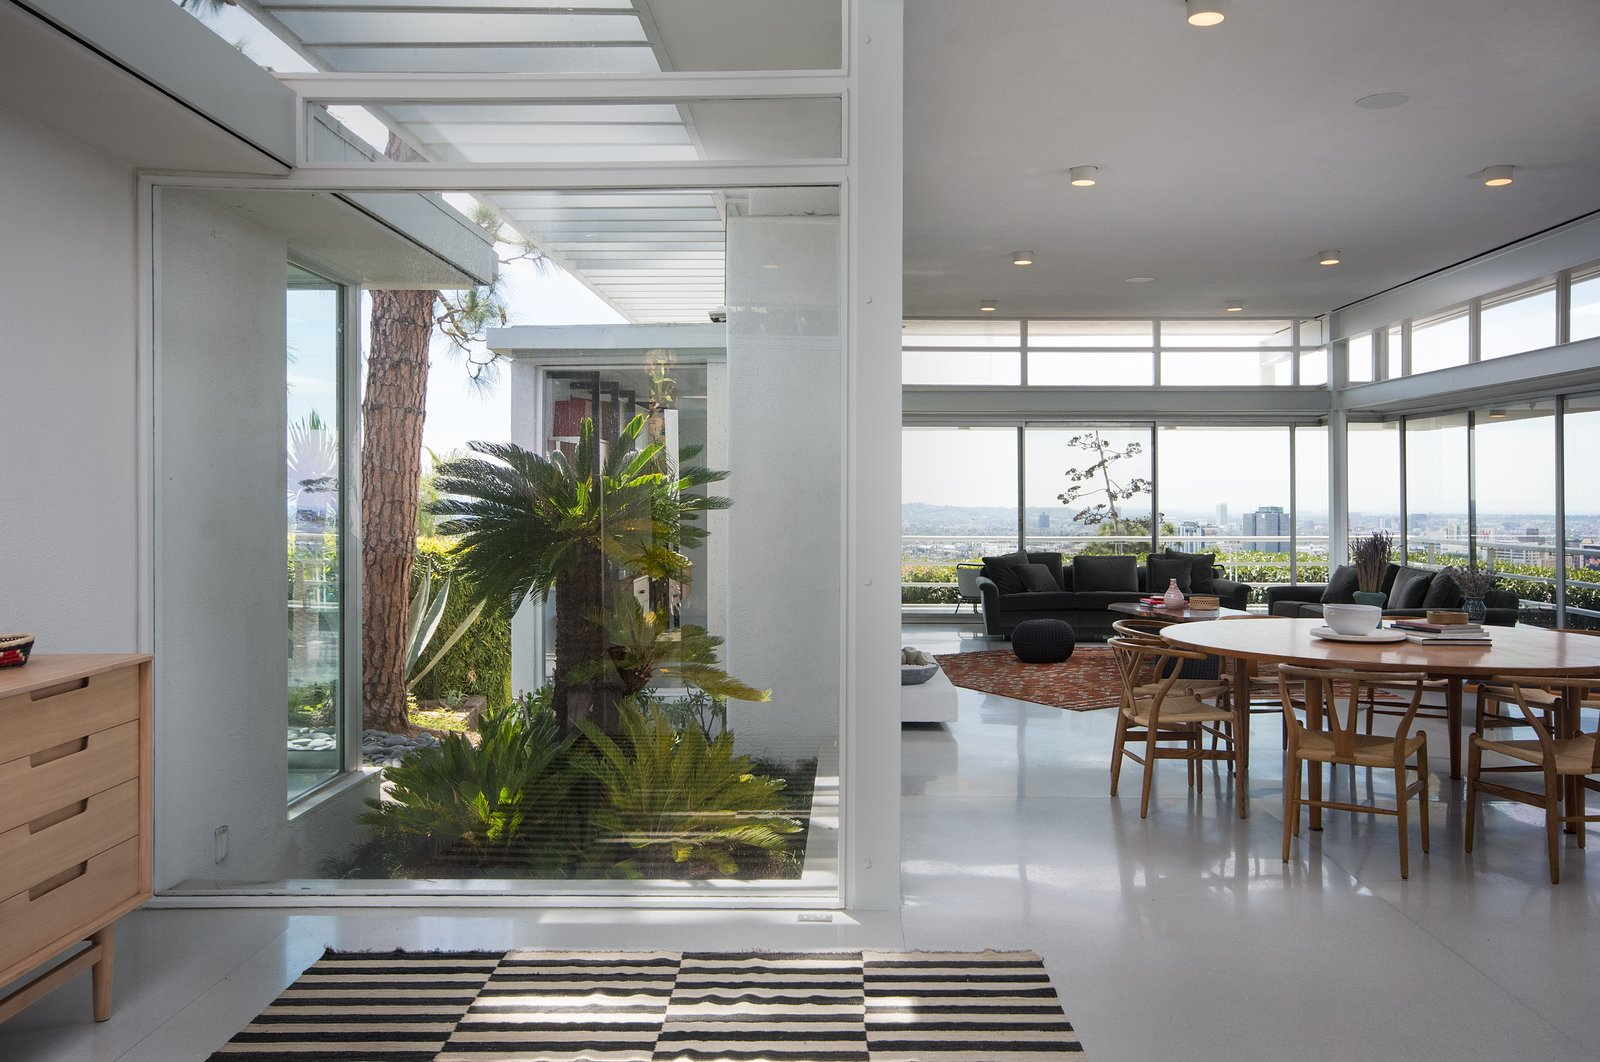 Living Room, Table, Chair, Ceiling Lighting, Console Tables, and Rug Floor Ample glazing provides a strong sense of indoor/outdoor living.  Best Photos from Rooney Mara Asks $3.45M For a Restored Midcentury Stunner in L.A.